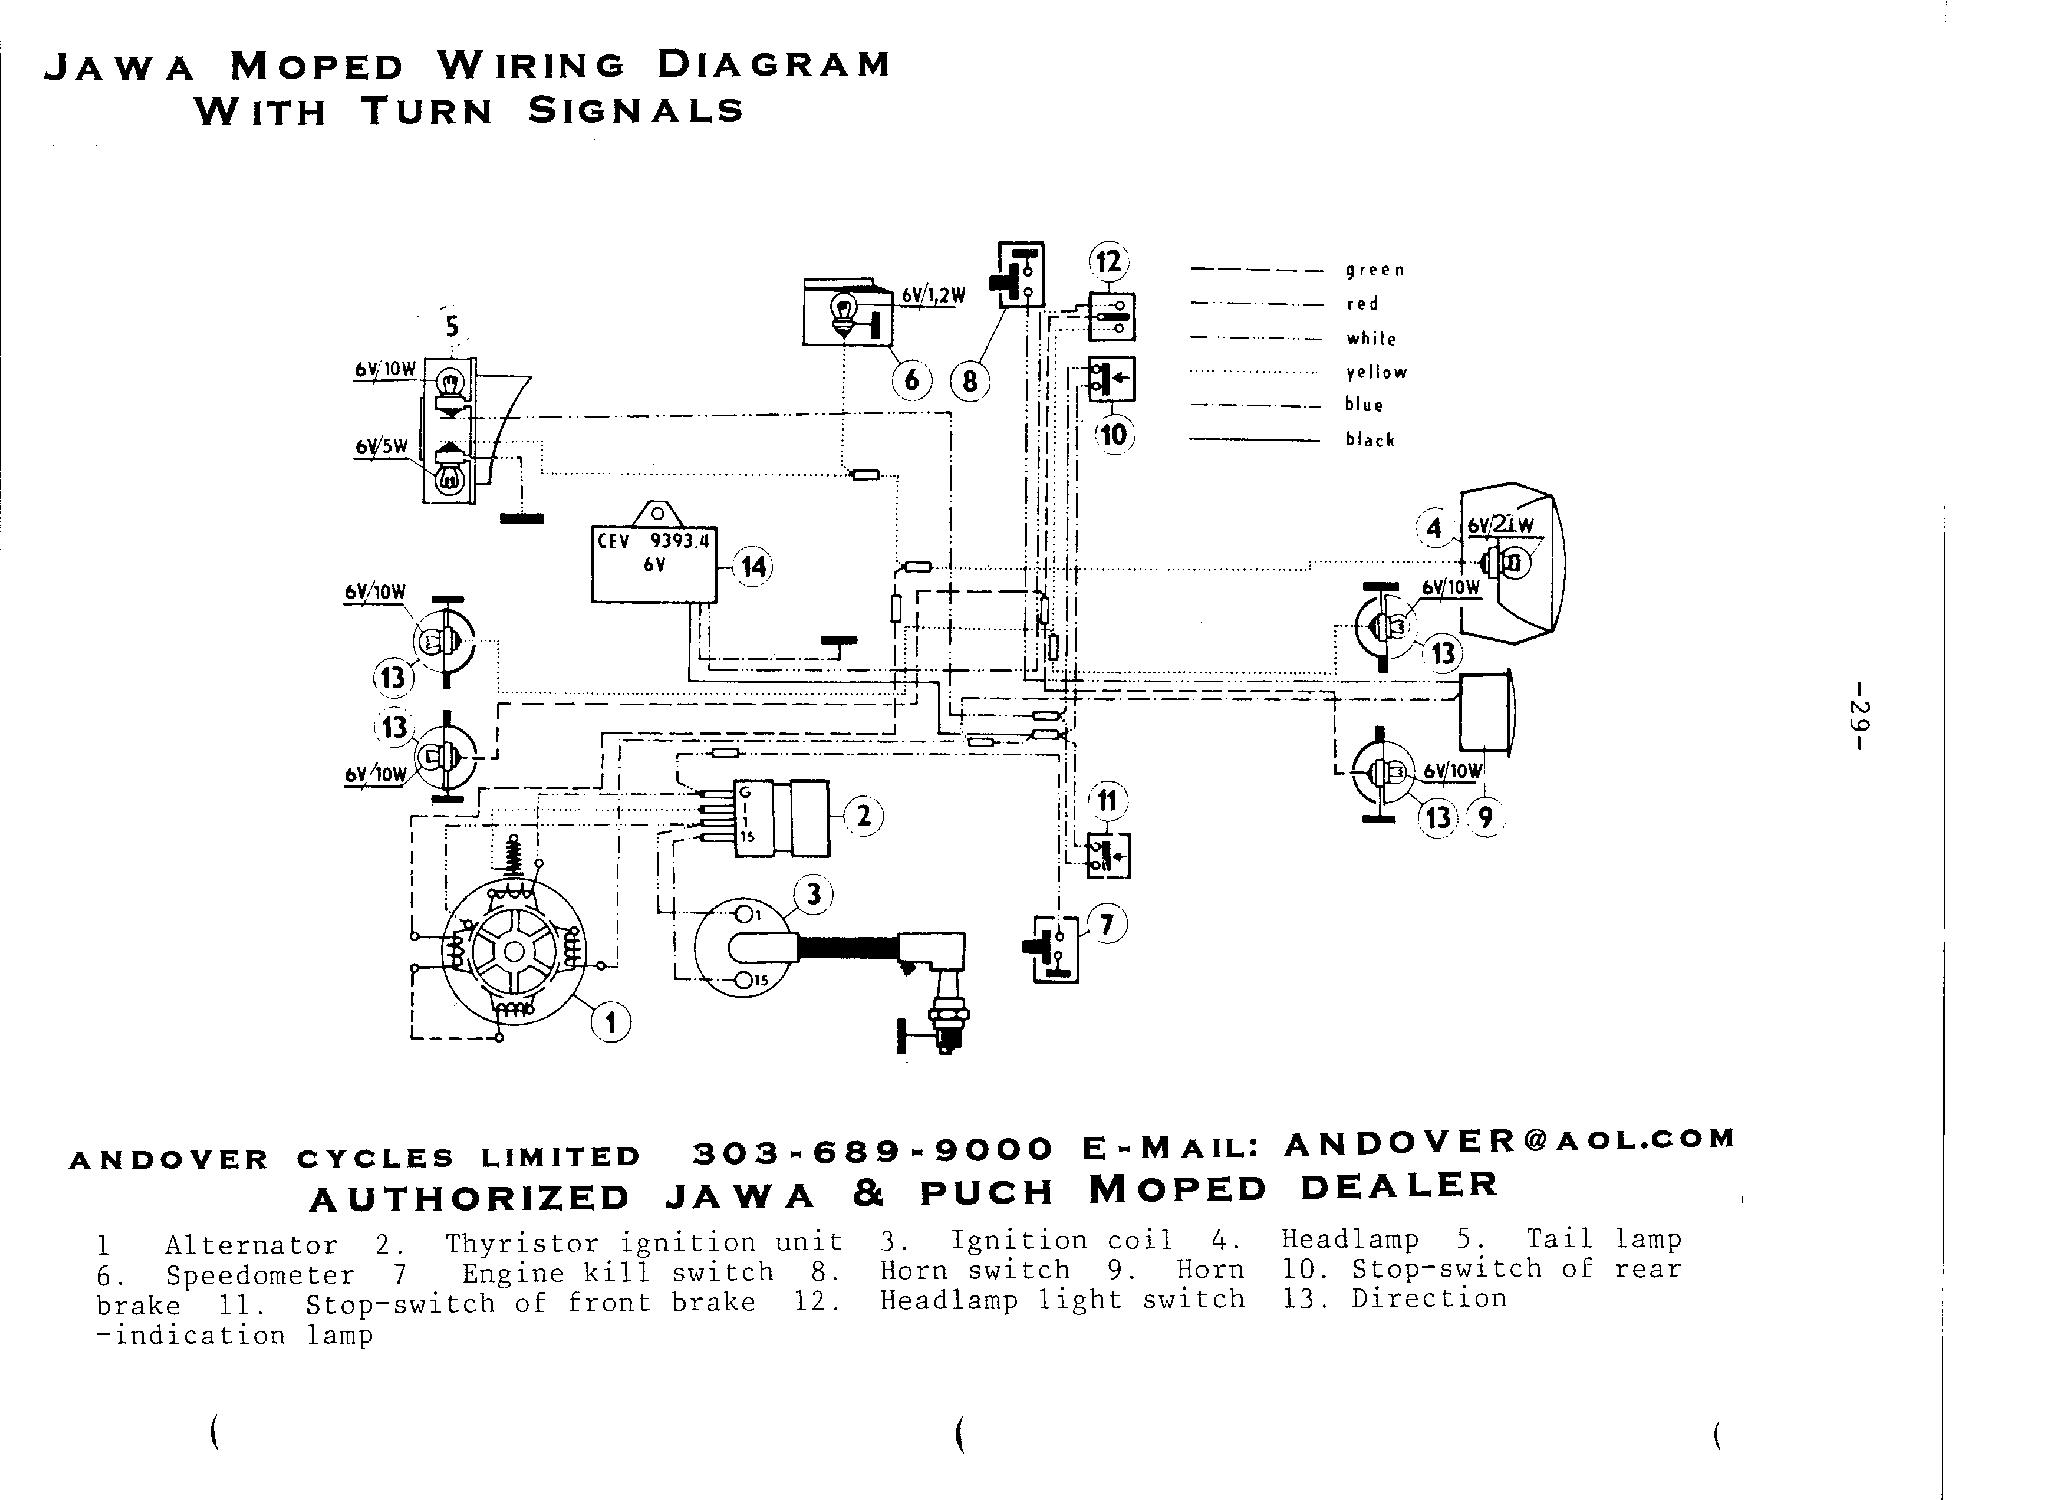 Jawa wiring diagrams: With turn signals ...